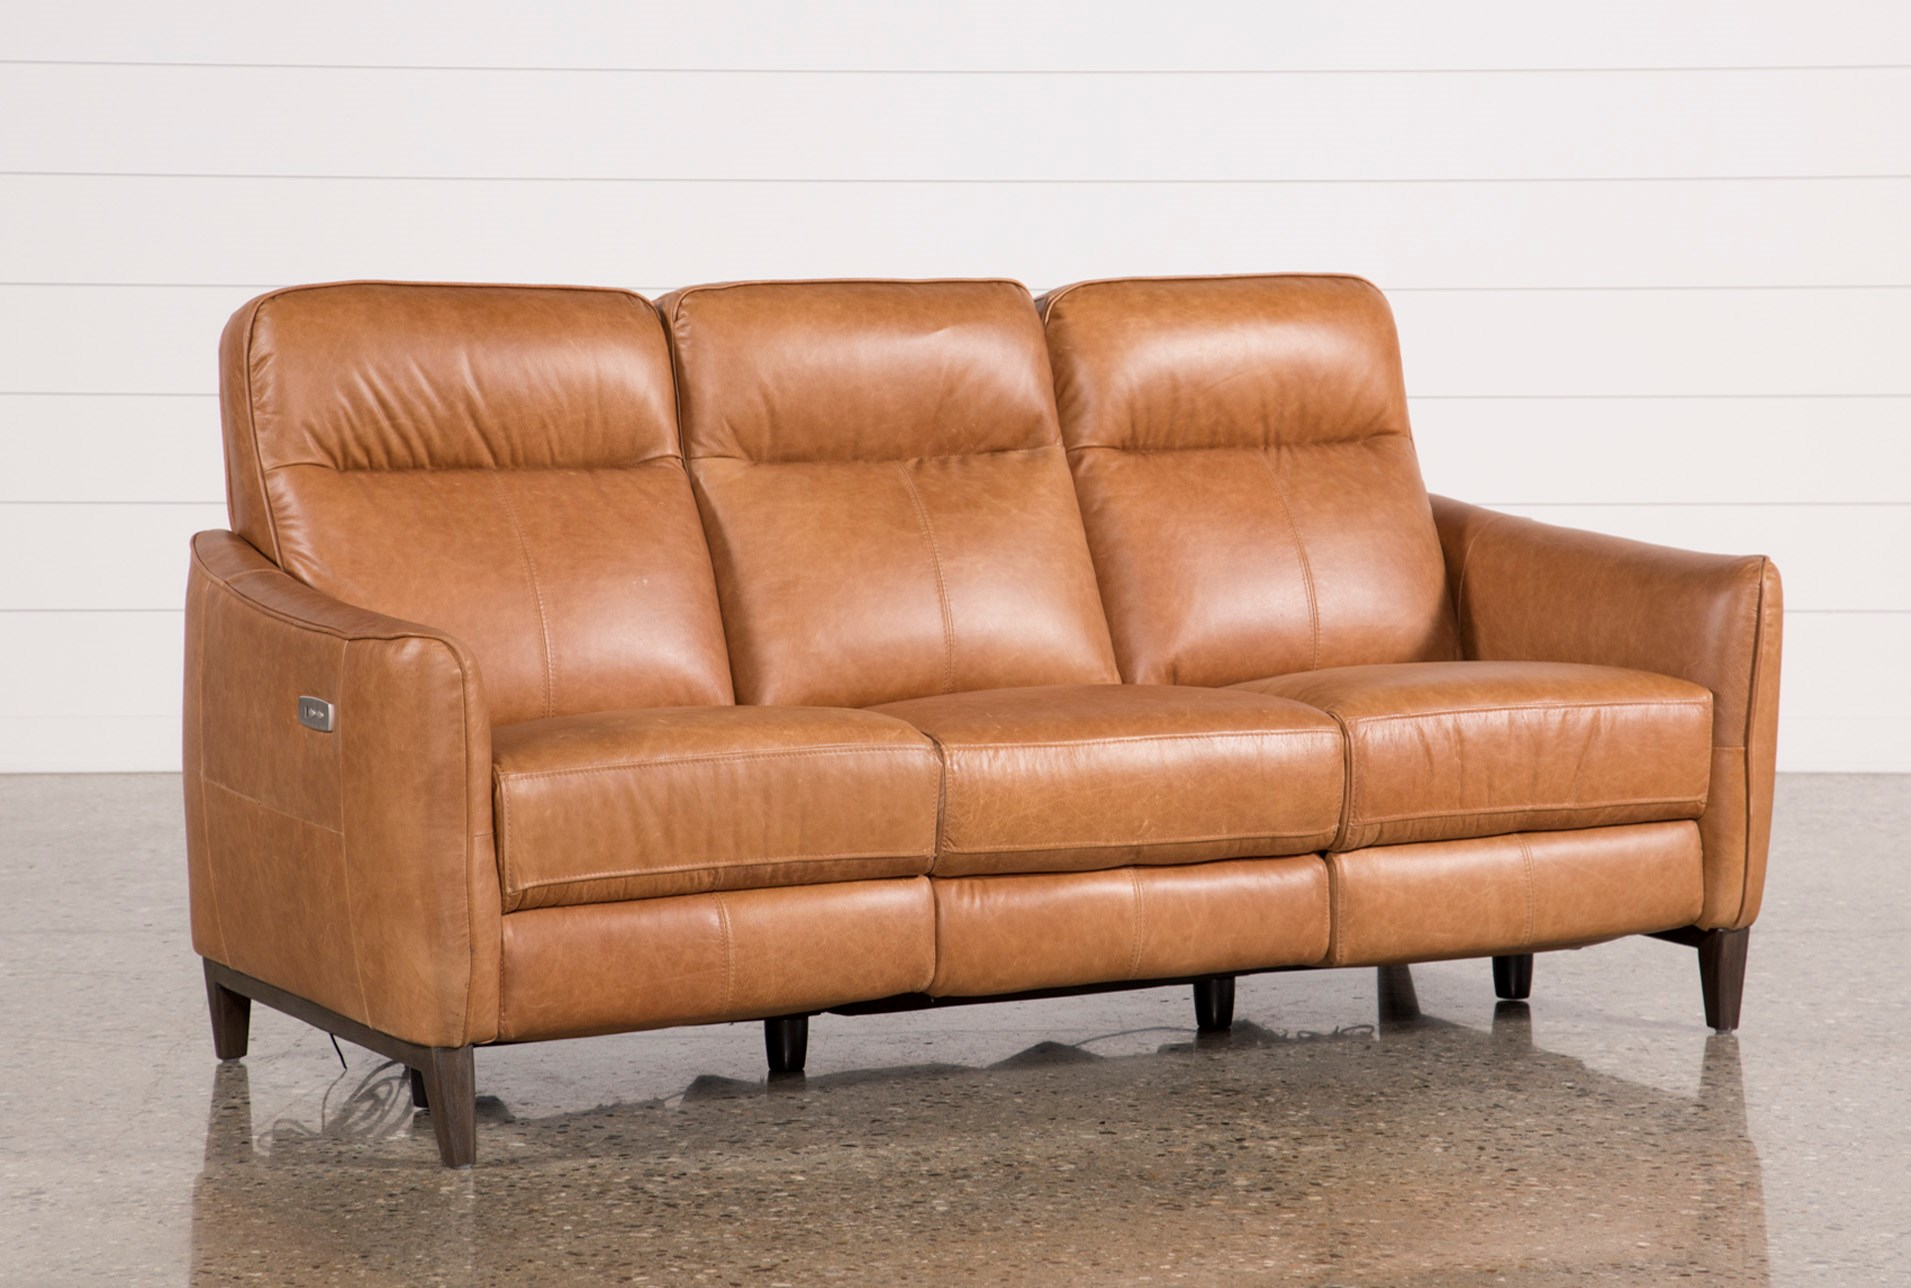 Torben Brown Leather Reclining Sofa W Usb Qty 1 Has Been Successfully Added To Your Cart